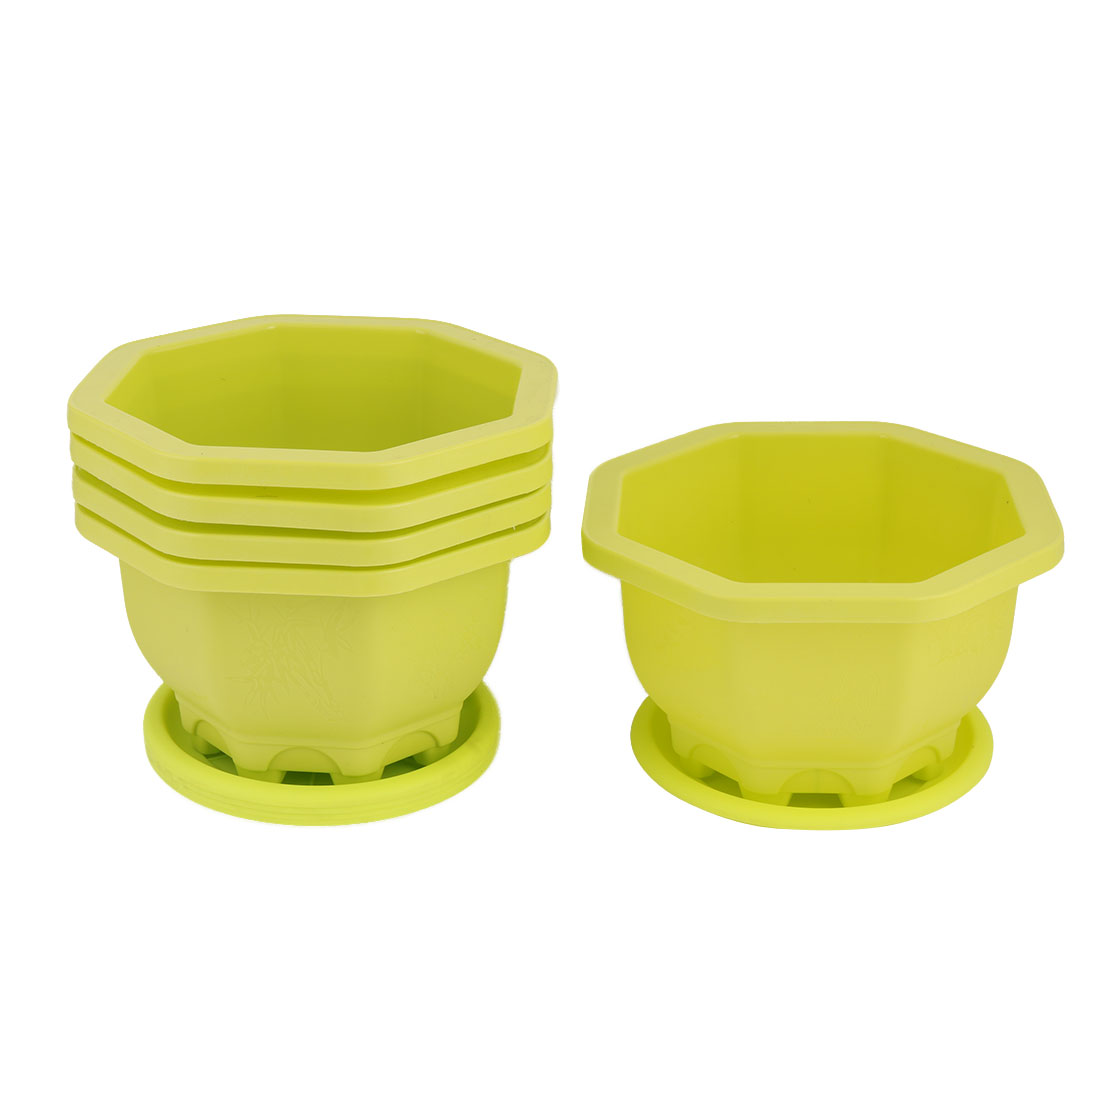 Outdoor Yard Plastic Round Flower Succulent Plant Pot Holder Tray Container Green 5pcs